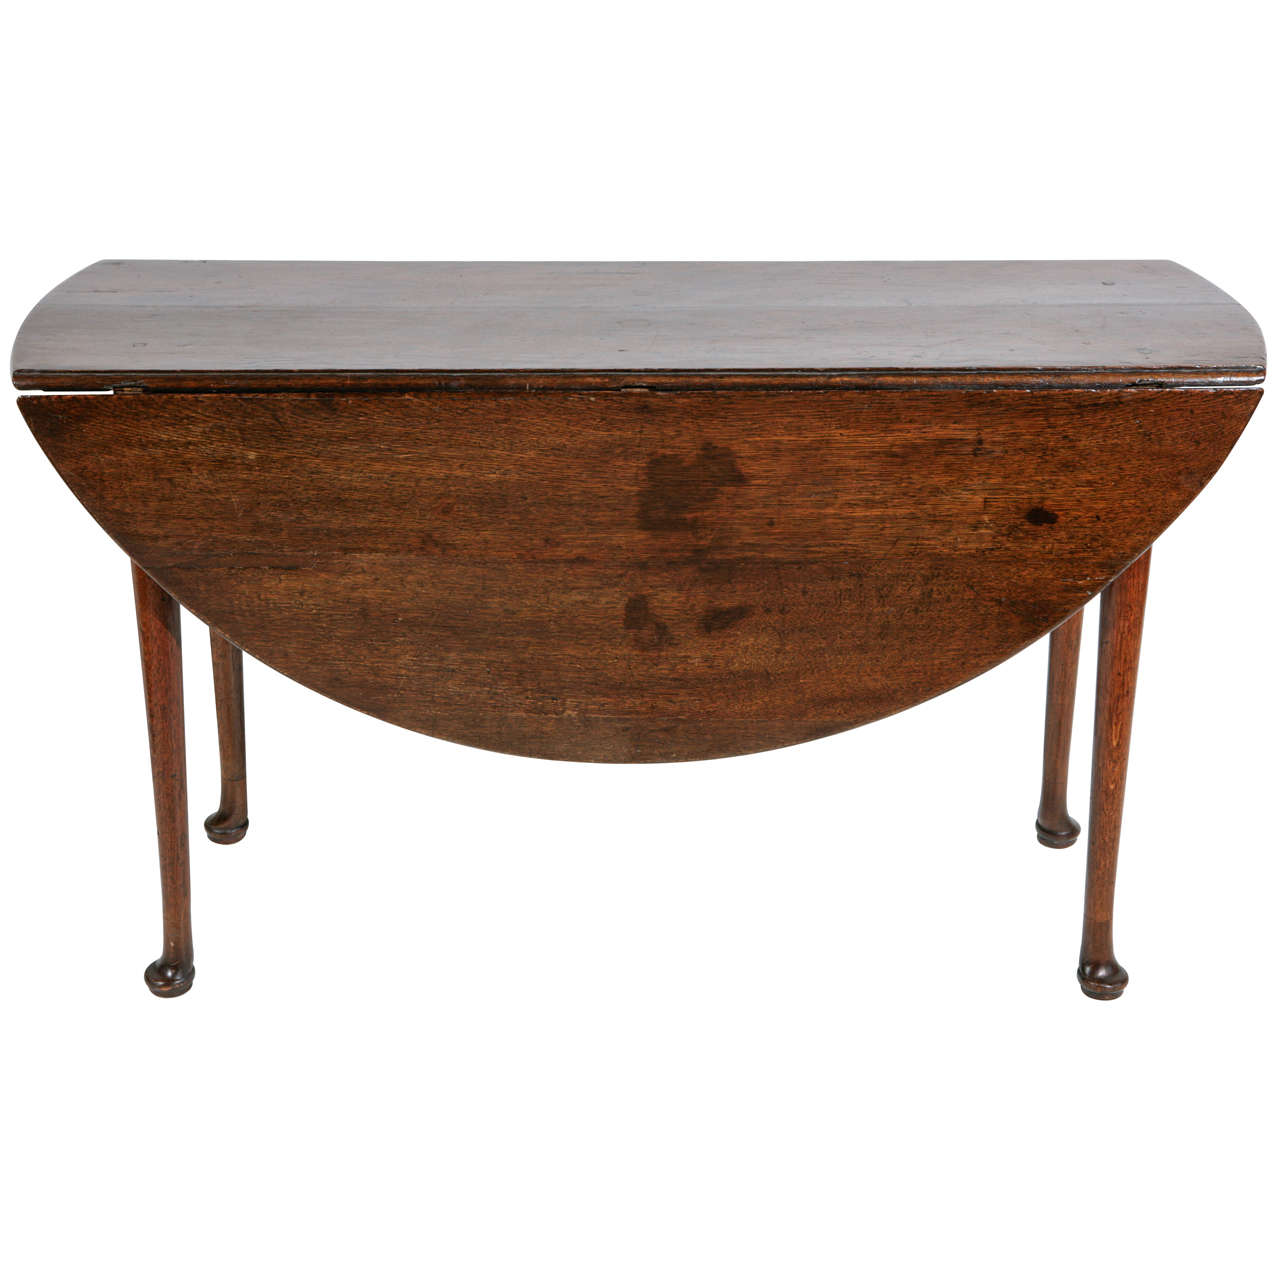 Queen anne walnut drop leaf round dining table and console for Drop leaf dining table